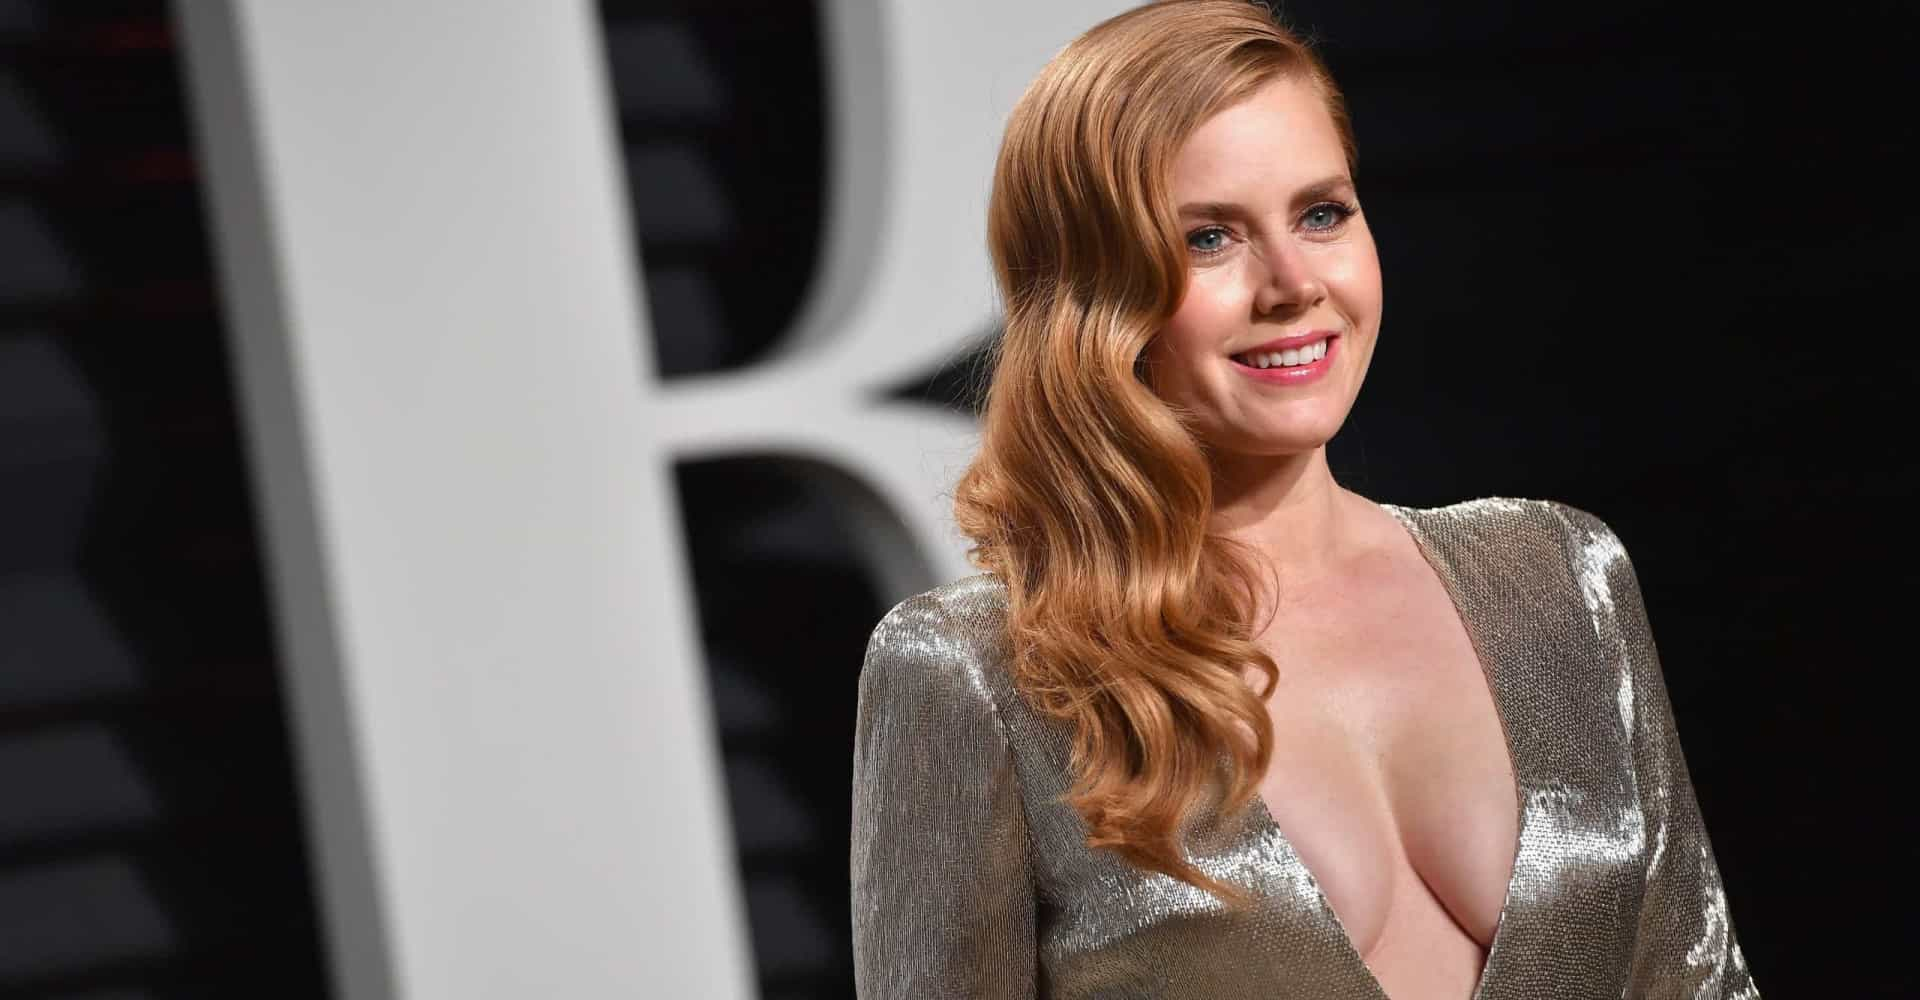 Amy Adams, one of Hollywood's most stylish red heads